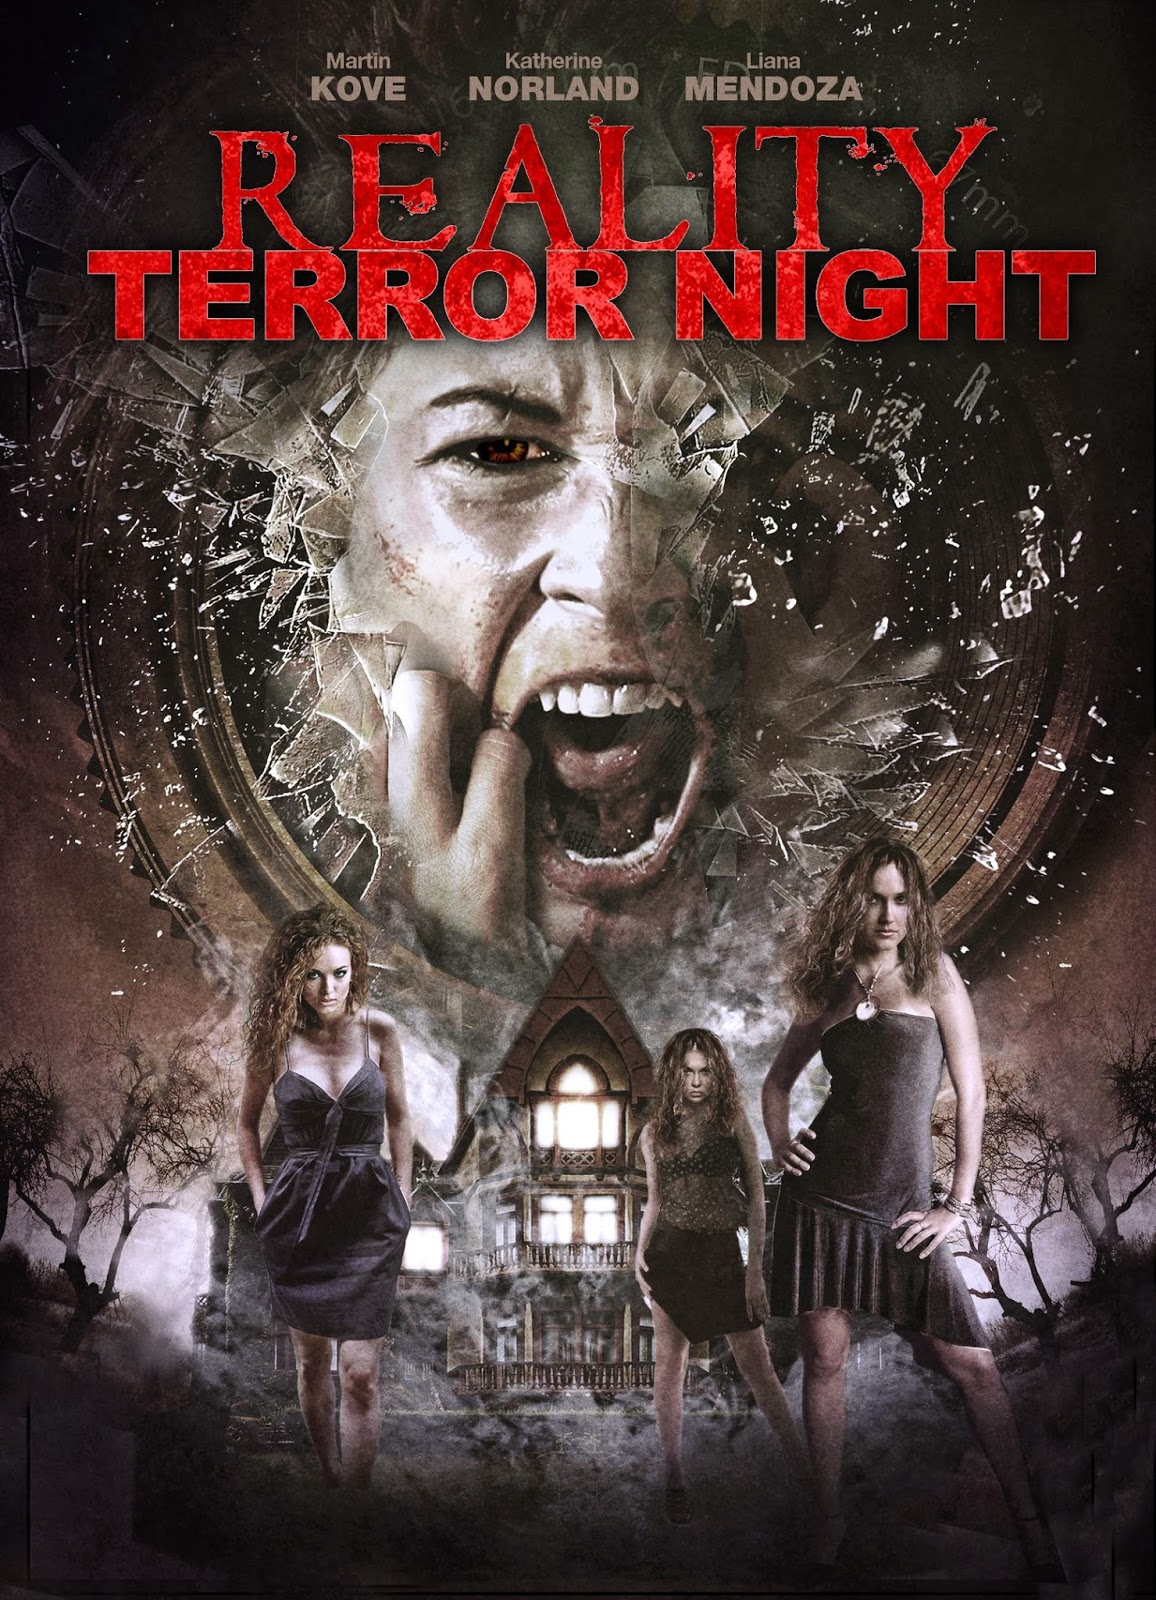 http://www.mazika4way.com/2013/12/Reality-Terror-Night-2013.html